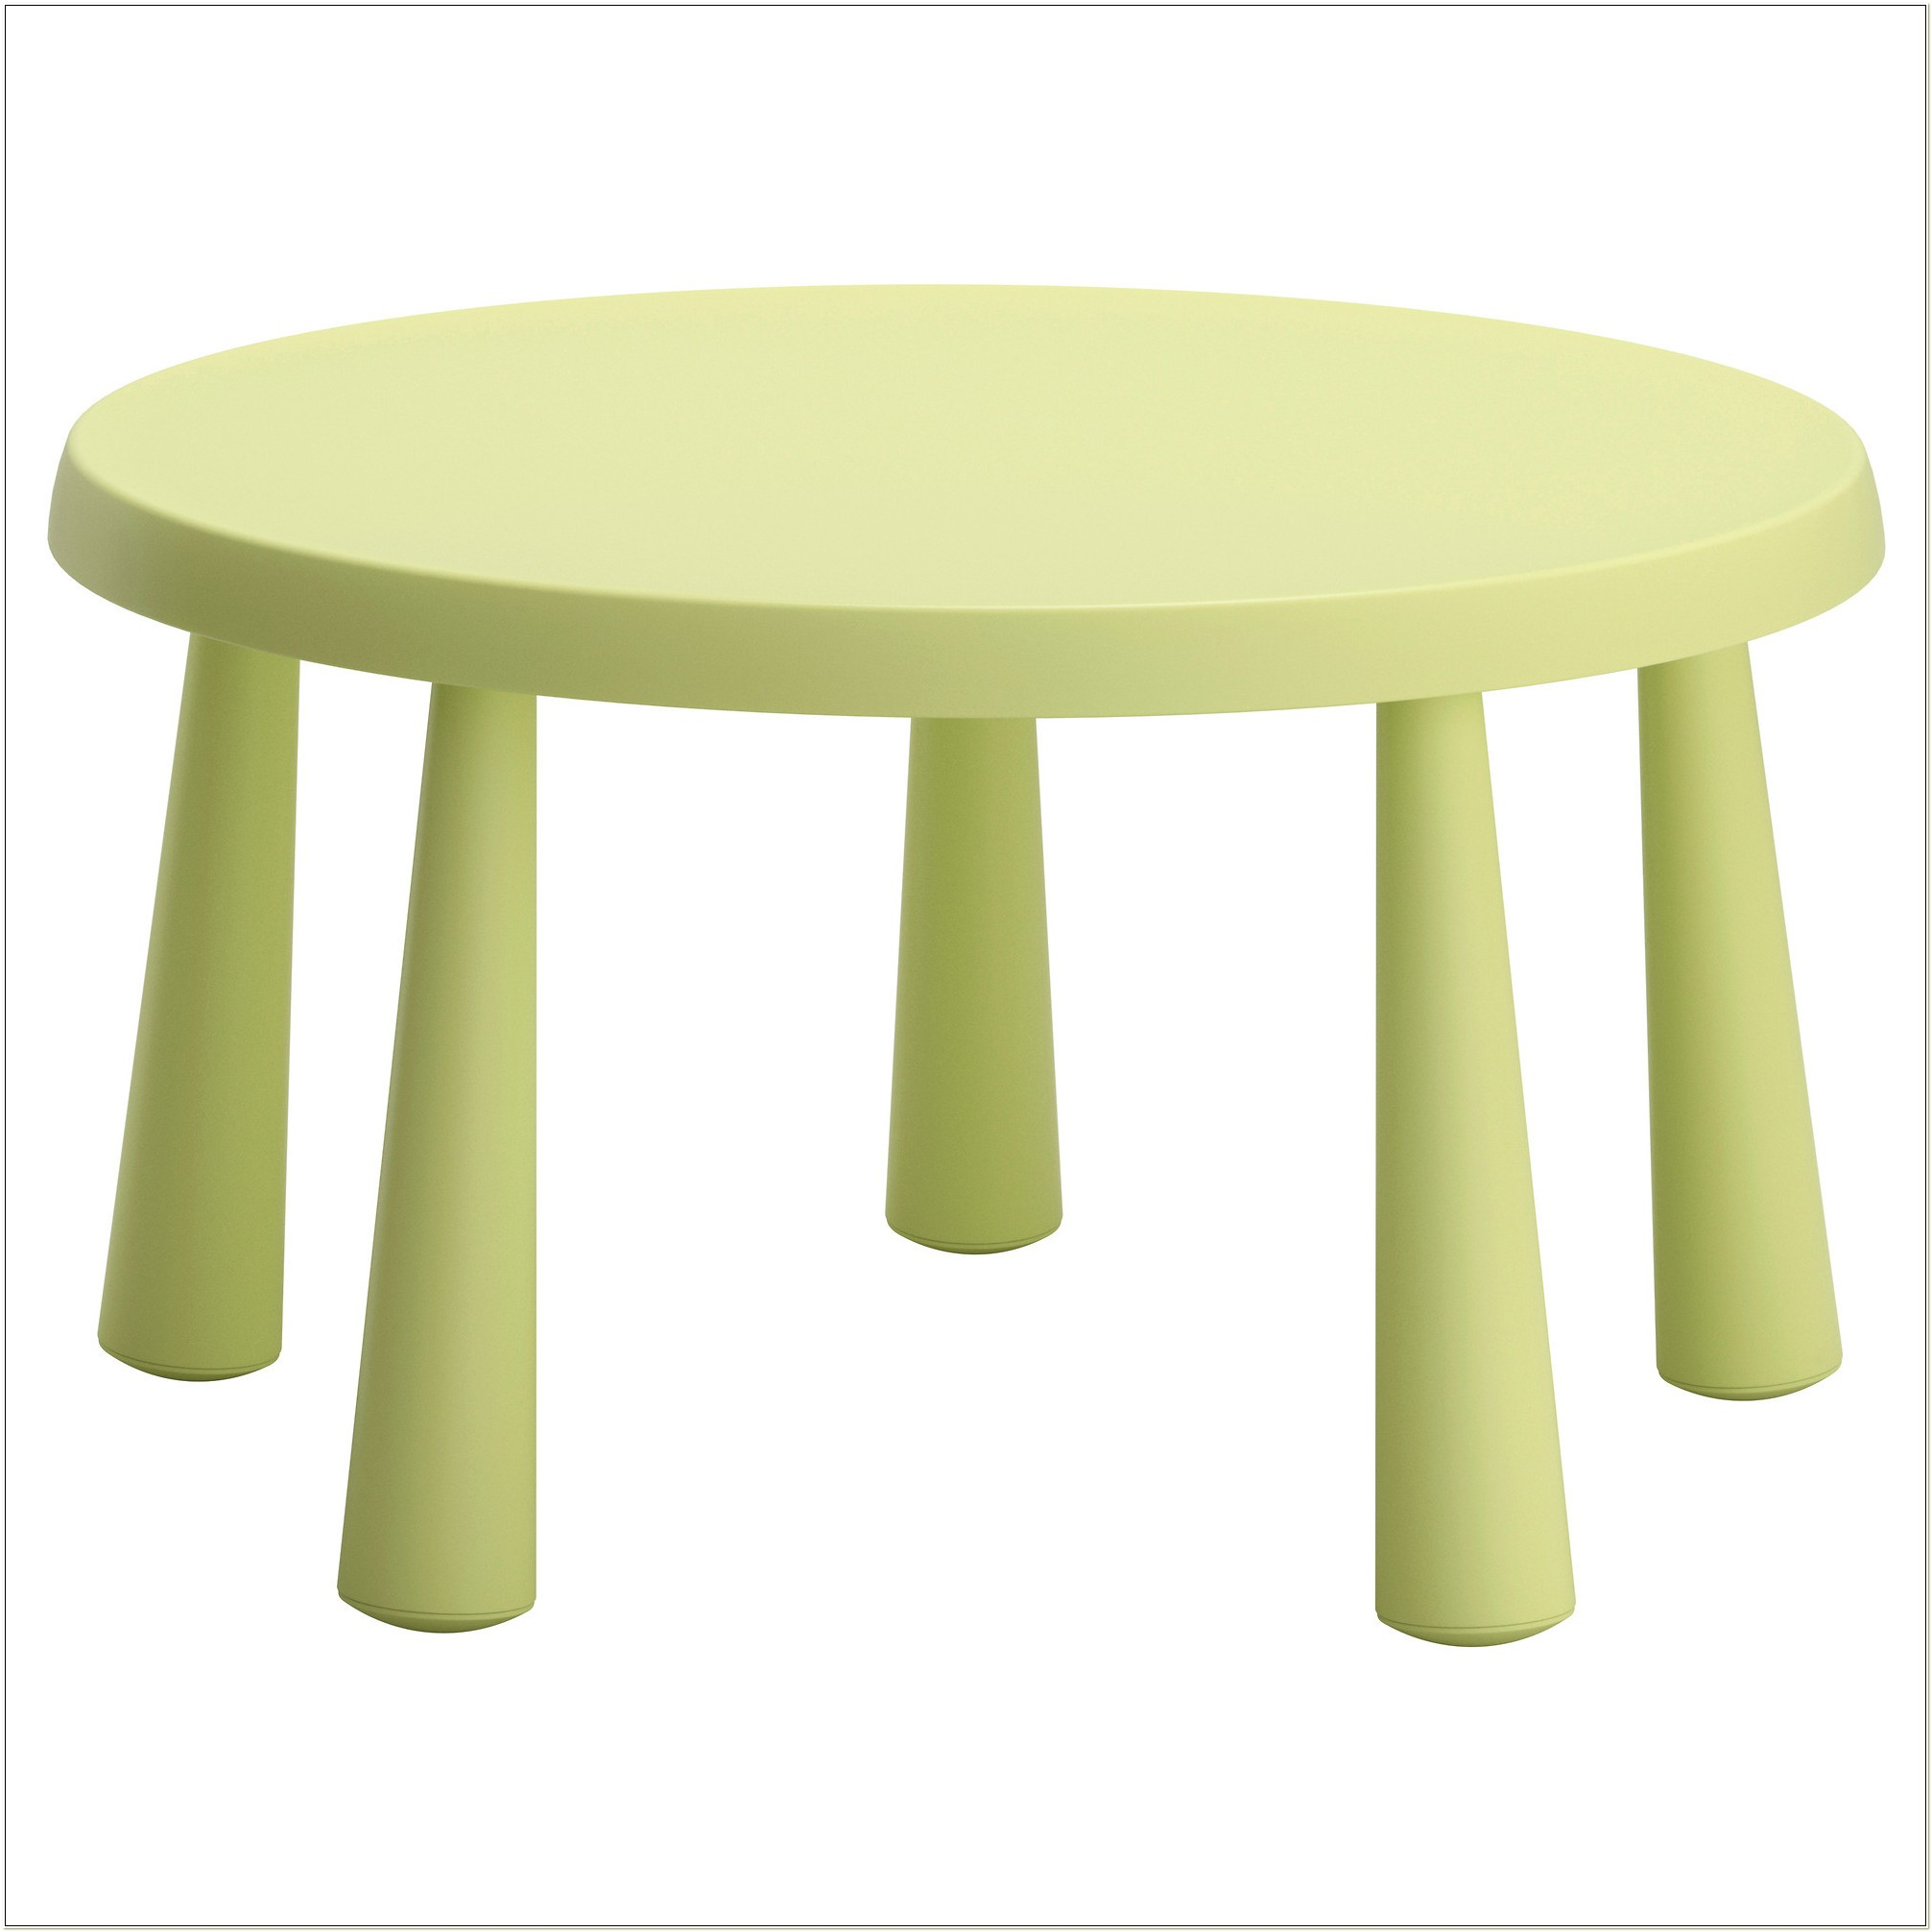 Ikea Childrens Plastic Table And Chairs